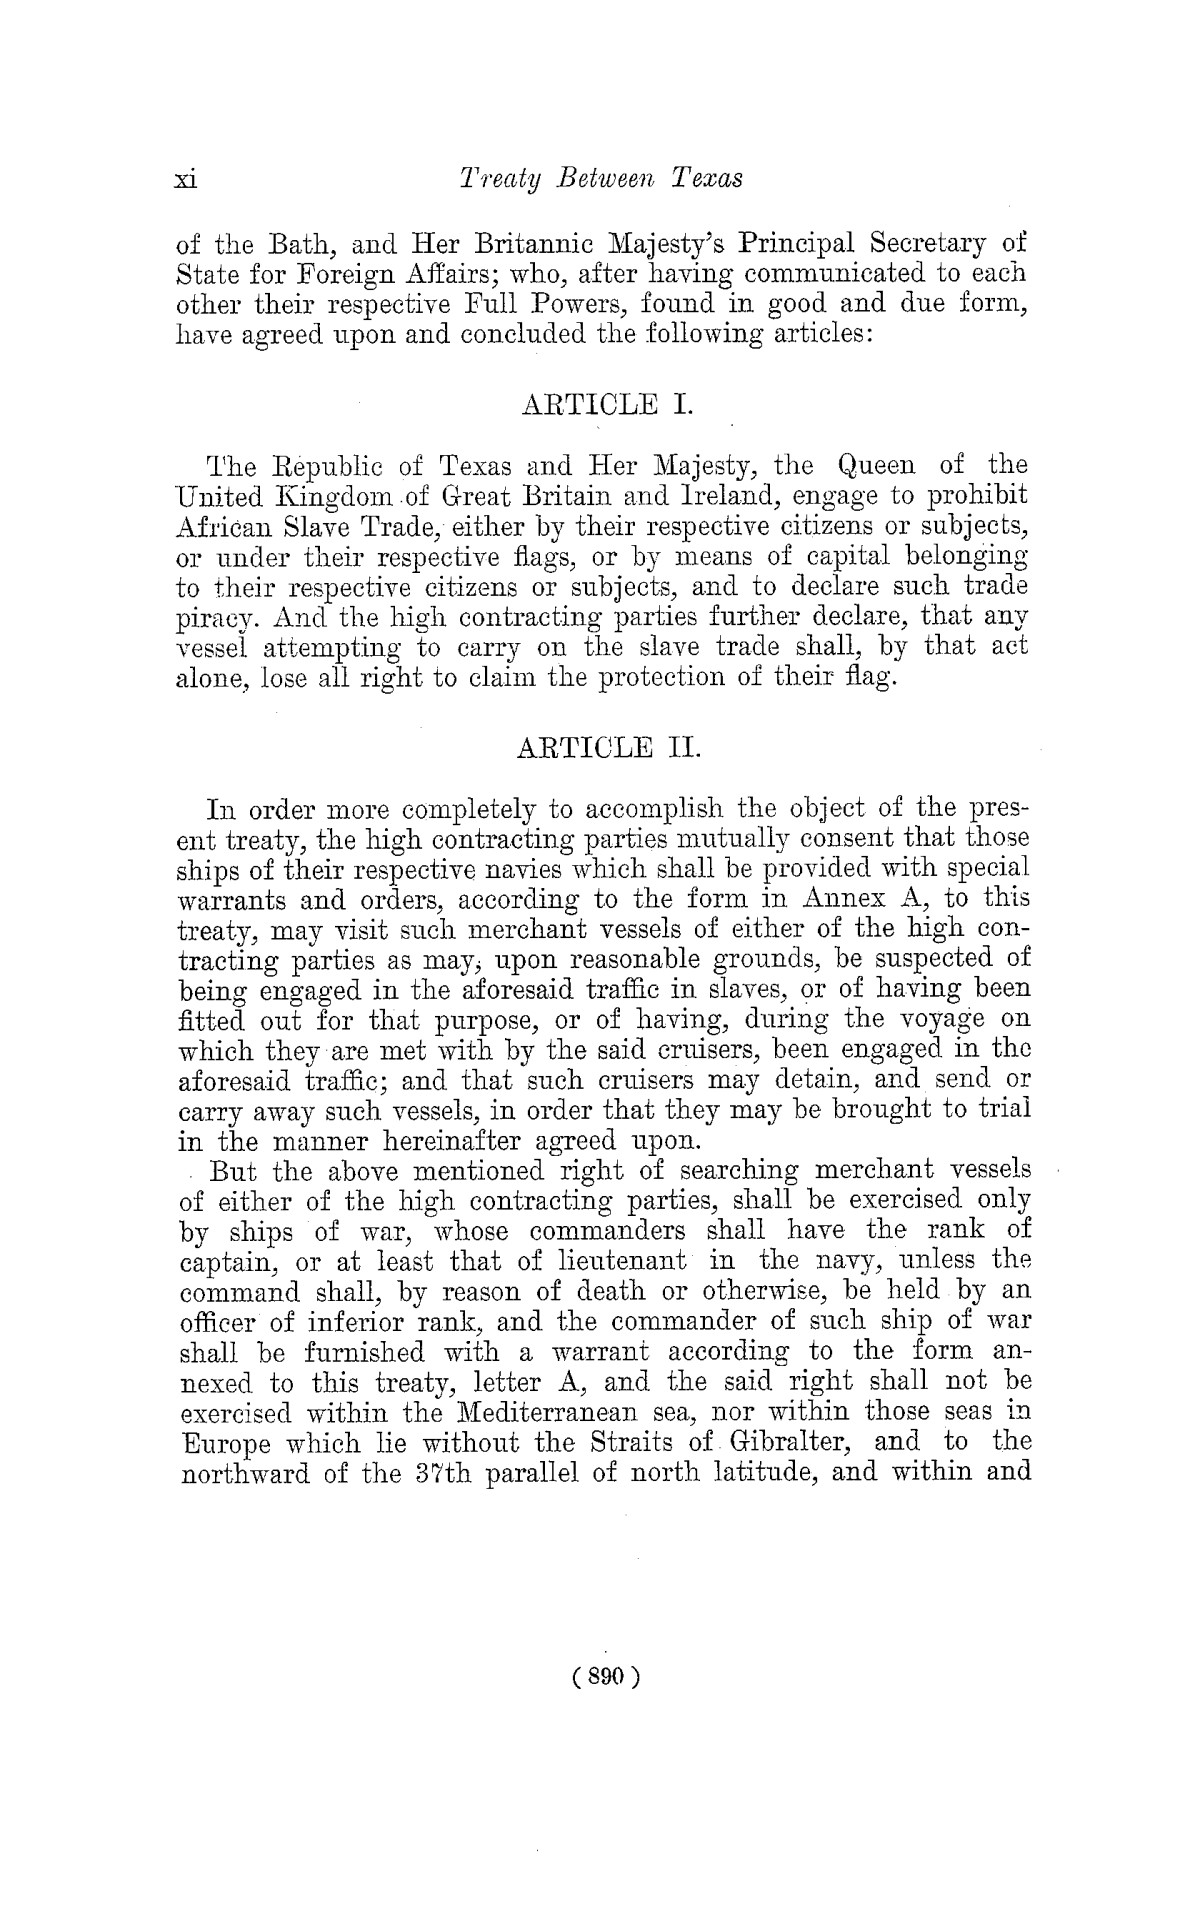 The Laws of Texas, 1822-1897 Volume 2                                                                                                      890